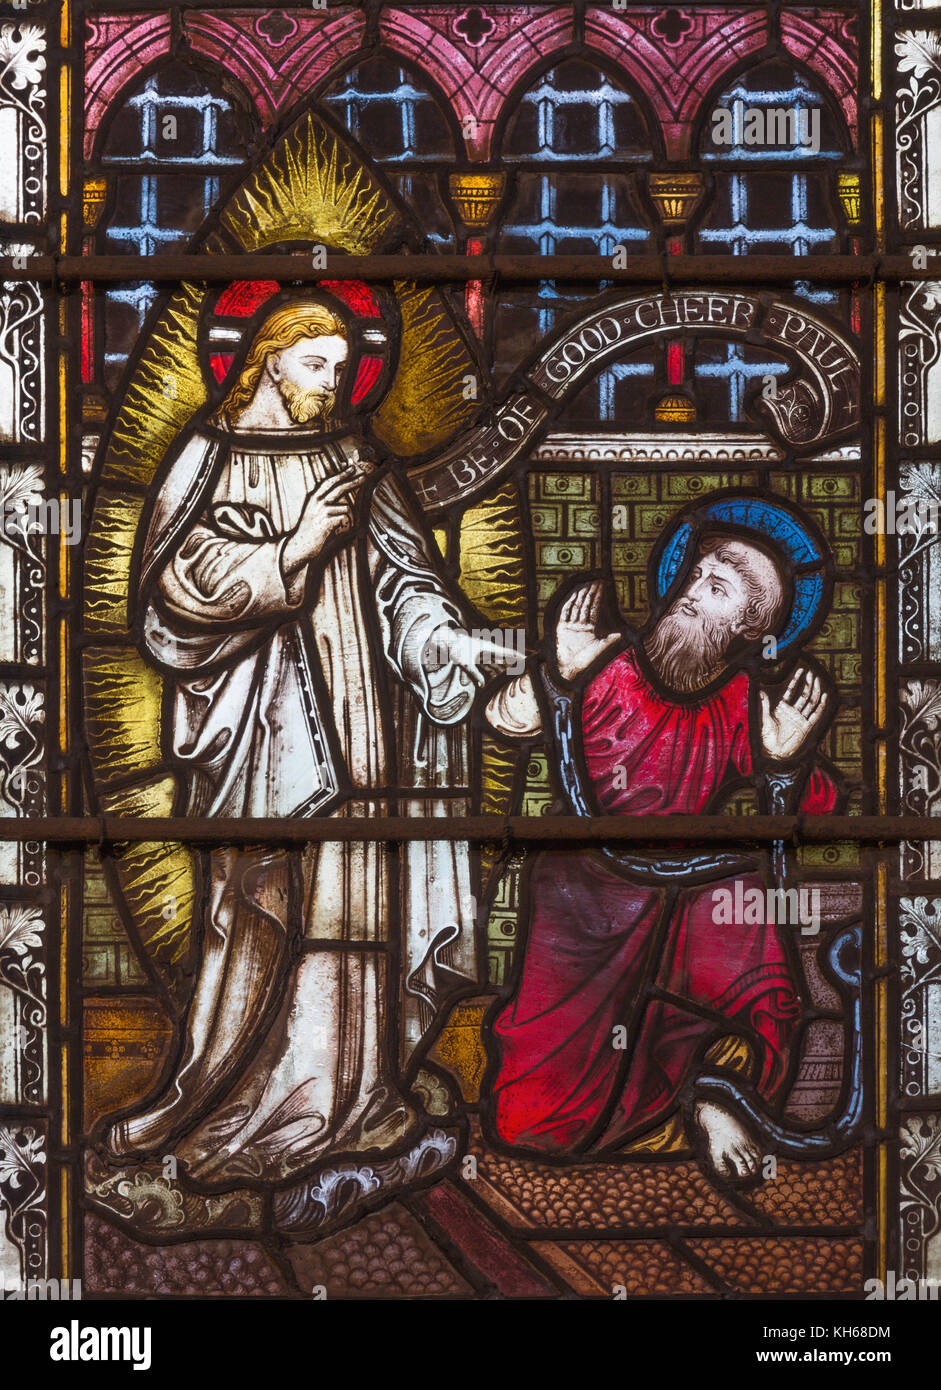 LONDON, GREAT BRITAIN - SEPTEMBER 19, 2017: The apparition of Jesus to St. Paul on Stained glass in St Mary Abbot's - Stock Image